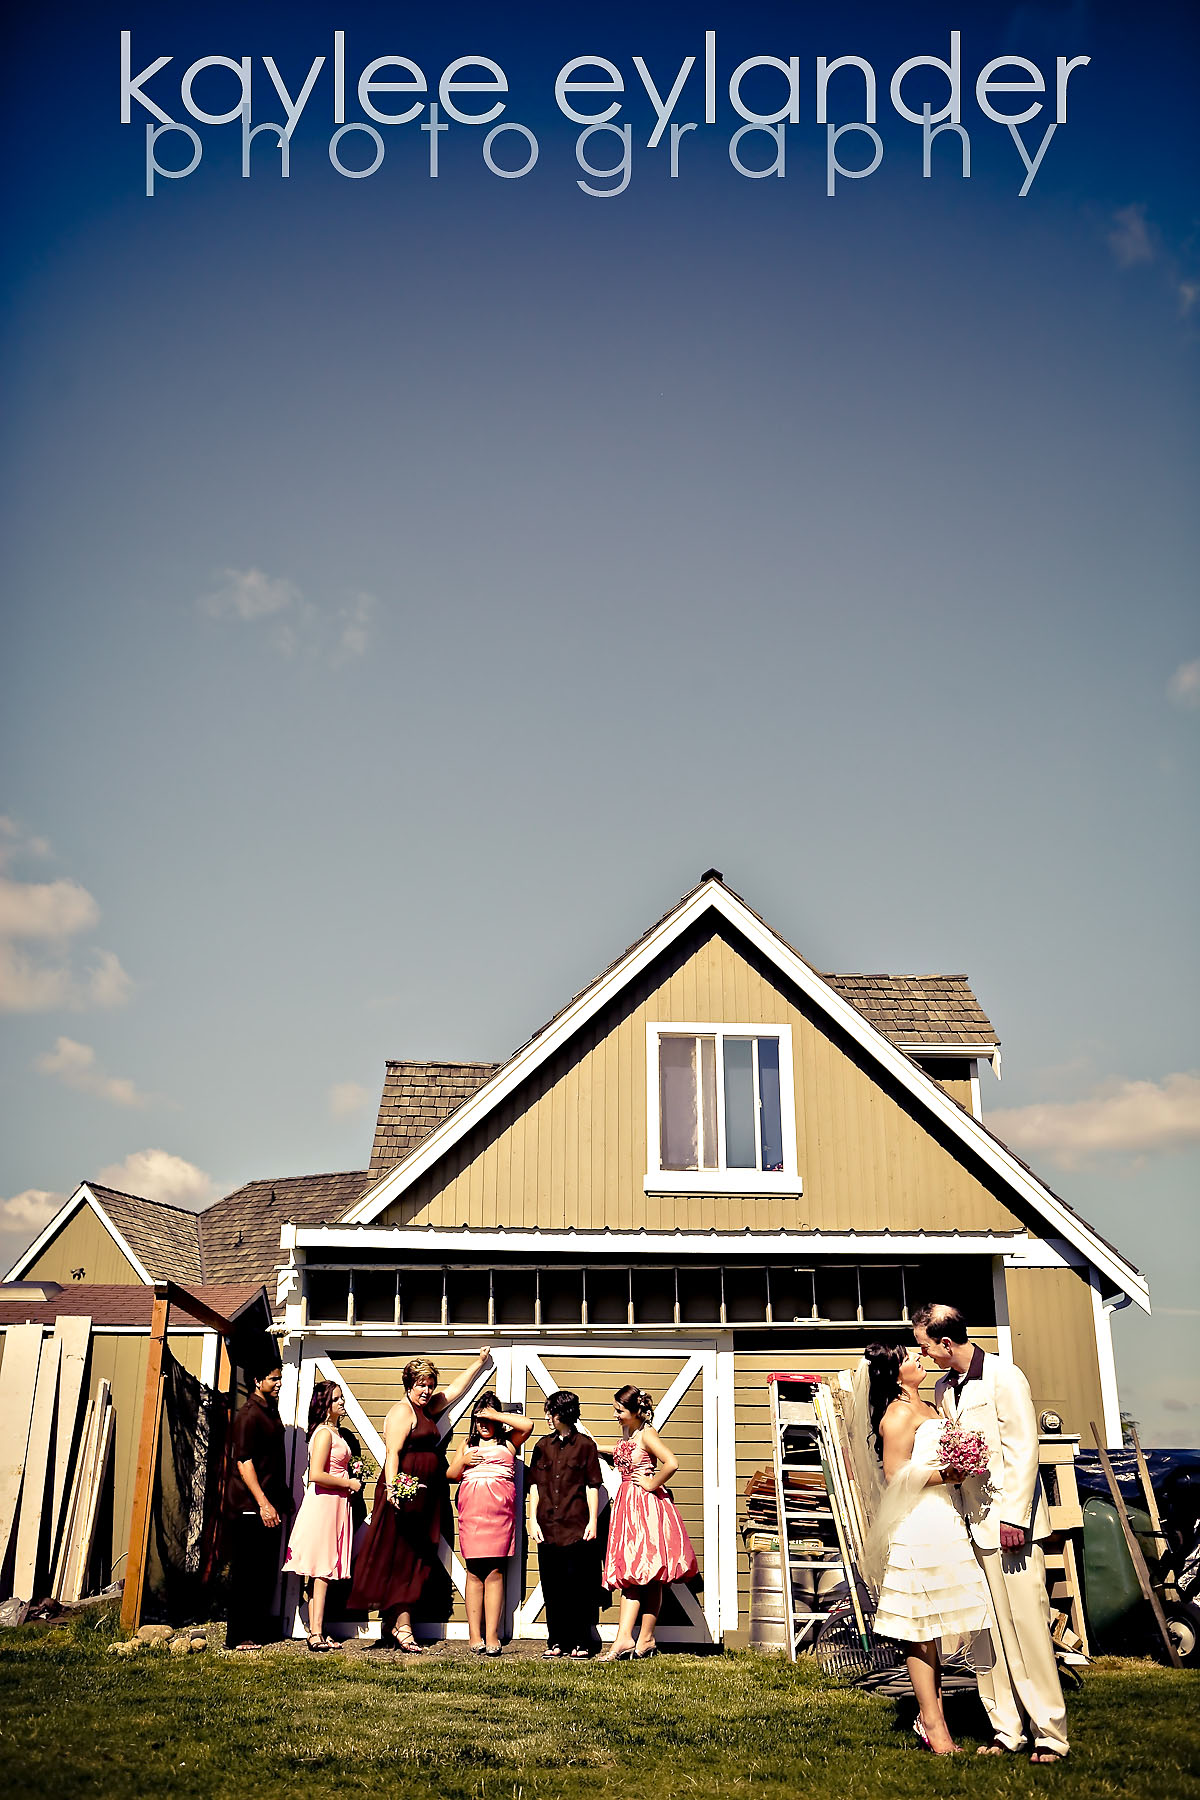 Wedding party 11 DIY Modern Vintage Wedding....gotta love it! | Kaylee Eylander Photography